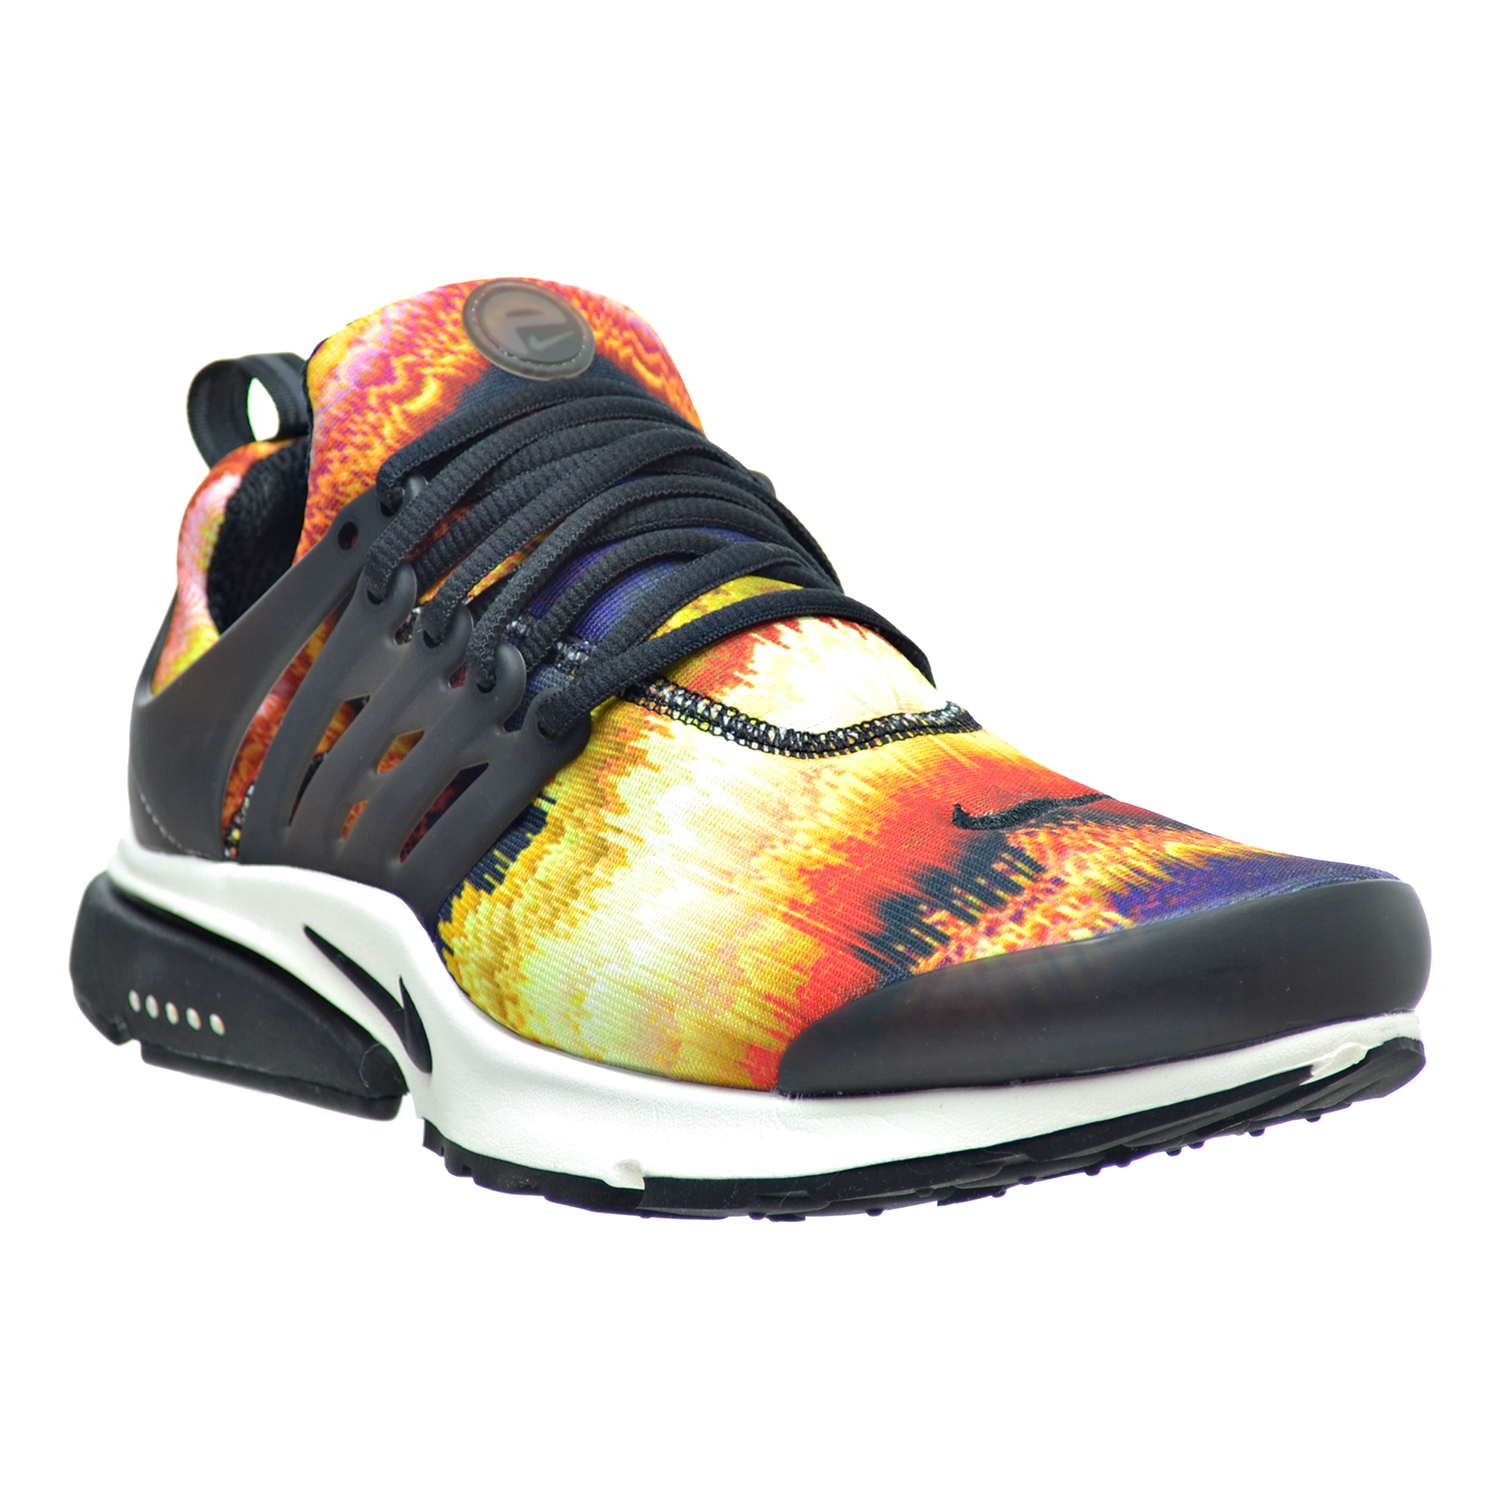 online store ace1a 265a1 ... coupon code for nike nike air presto gpx mens shoes vivid sulfur black  sail 848188 700